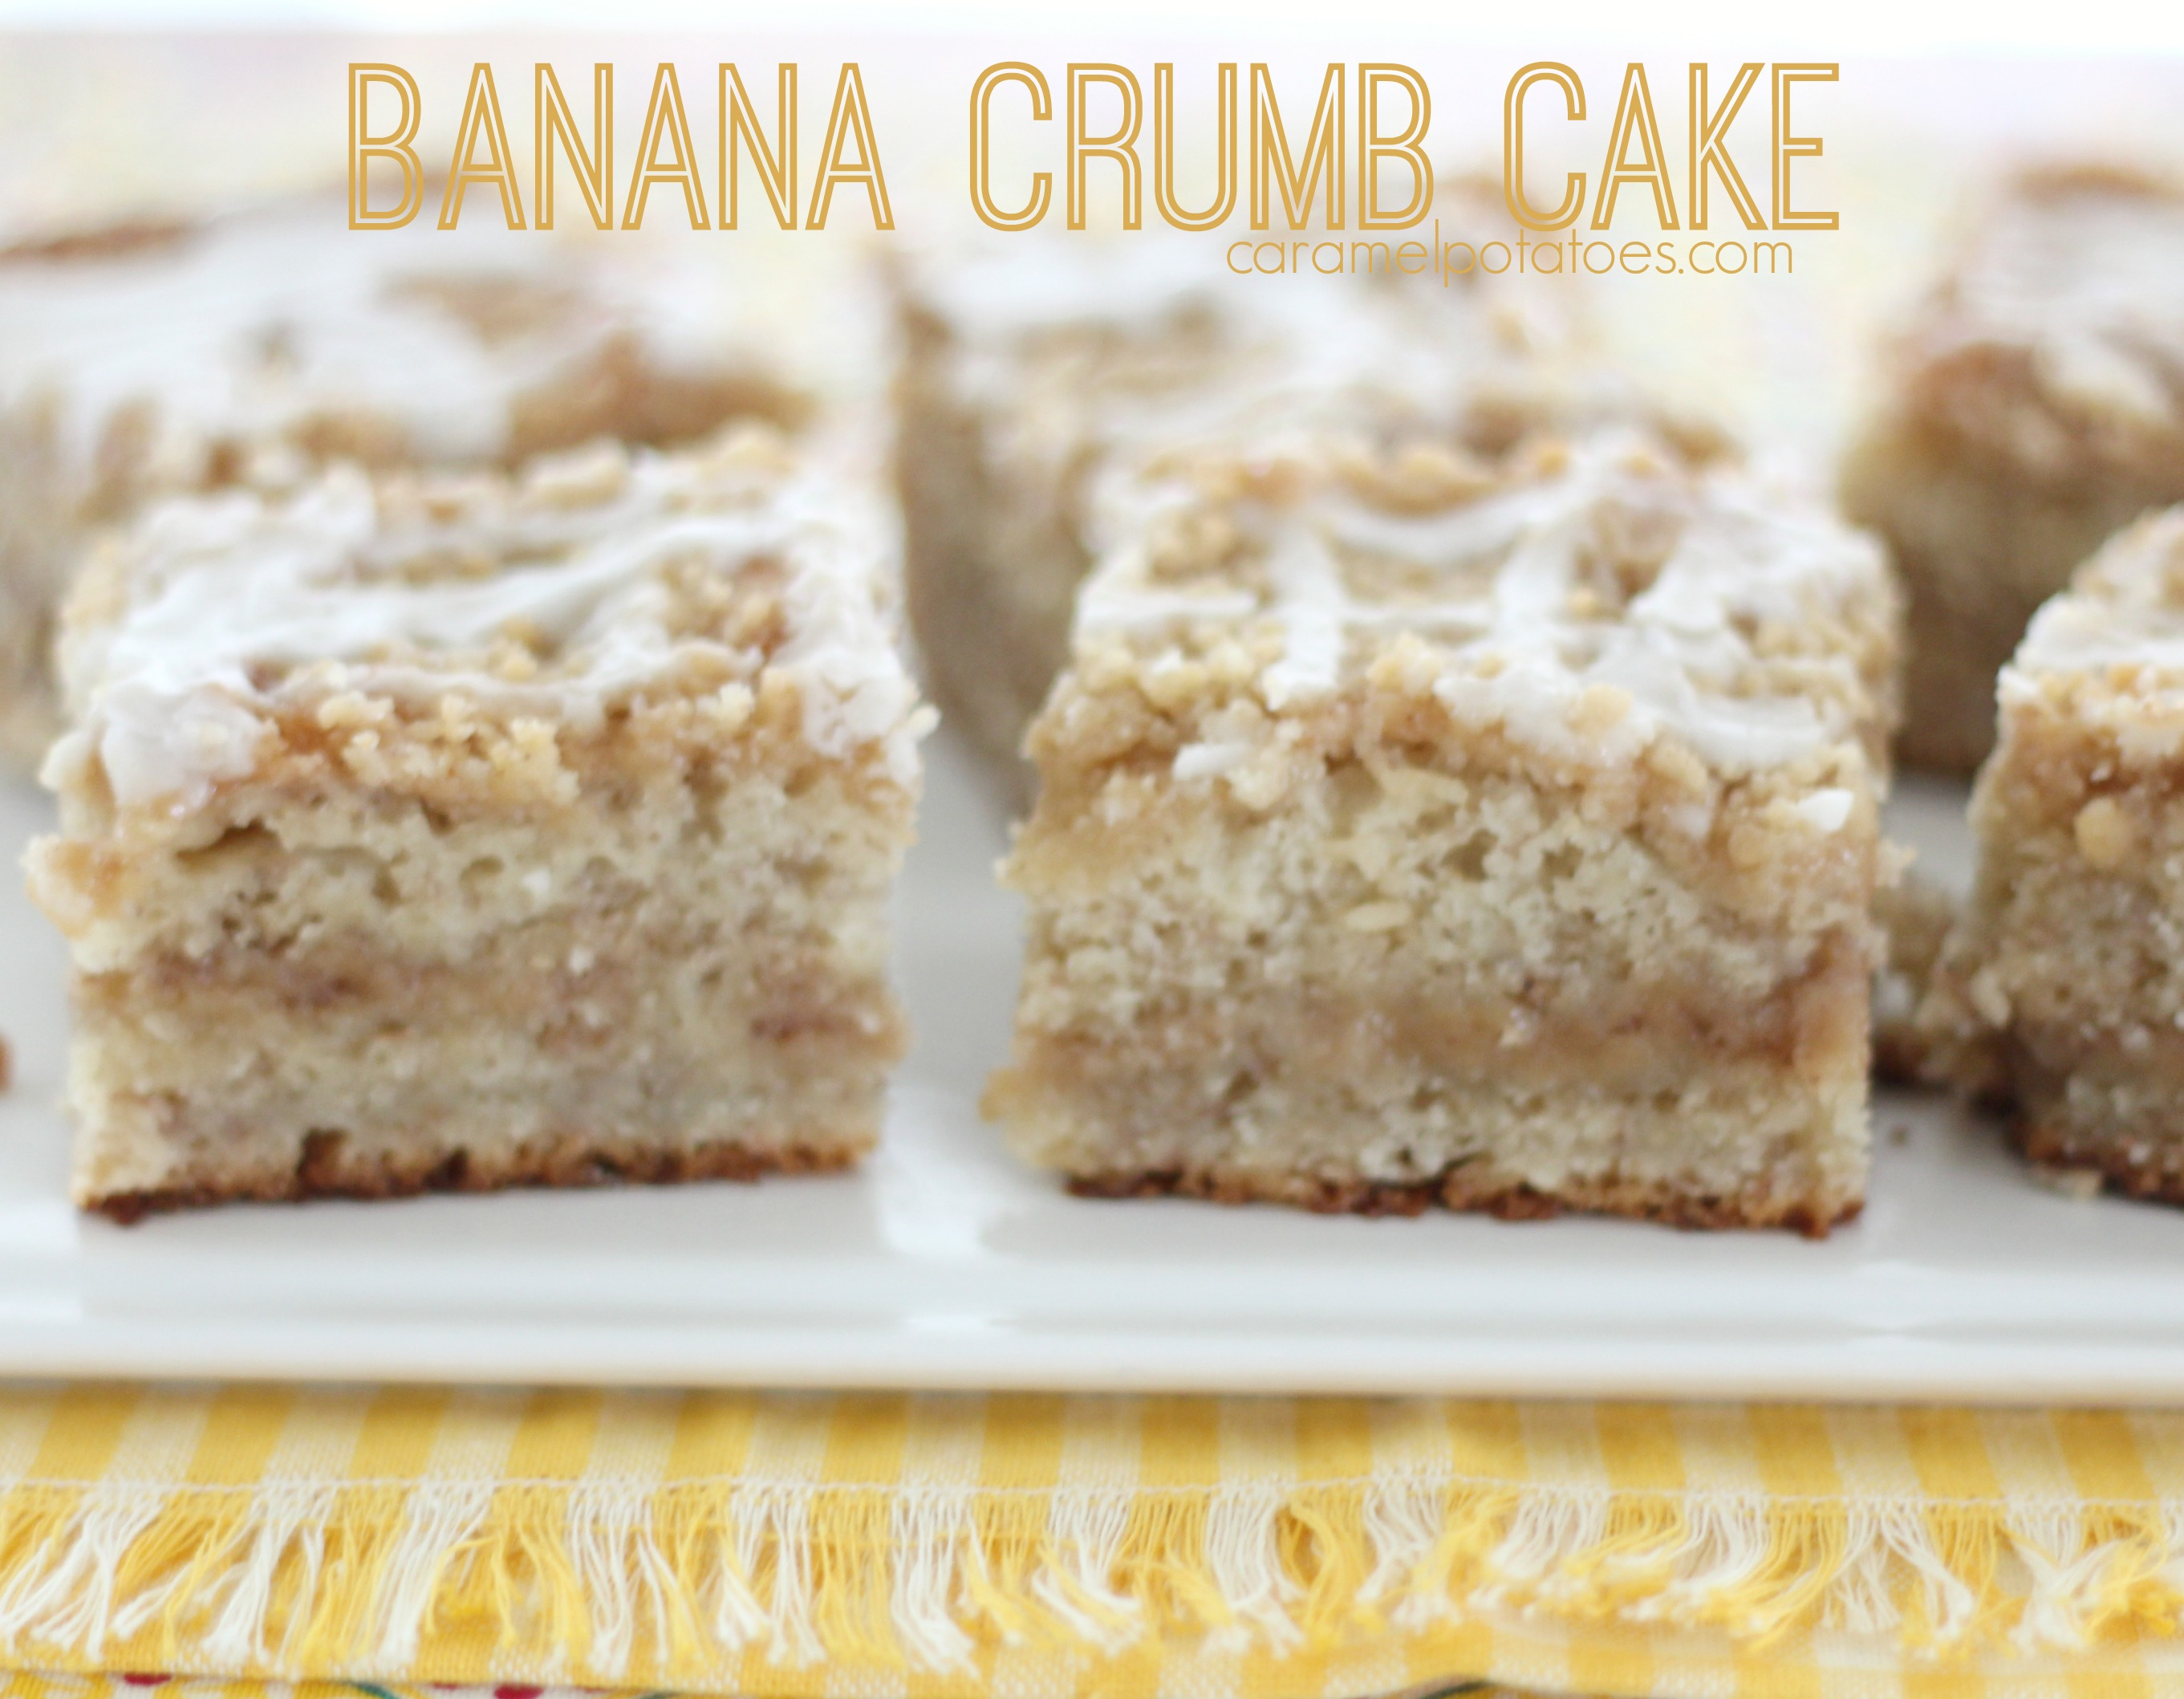 Banana Crumb Cake With Cake Mix